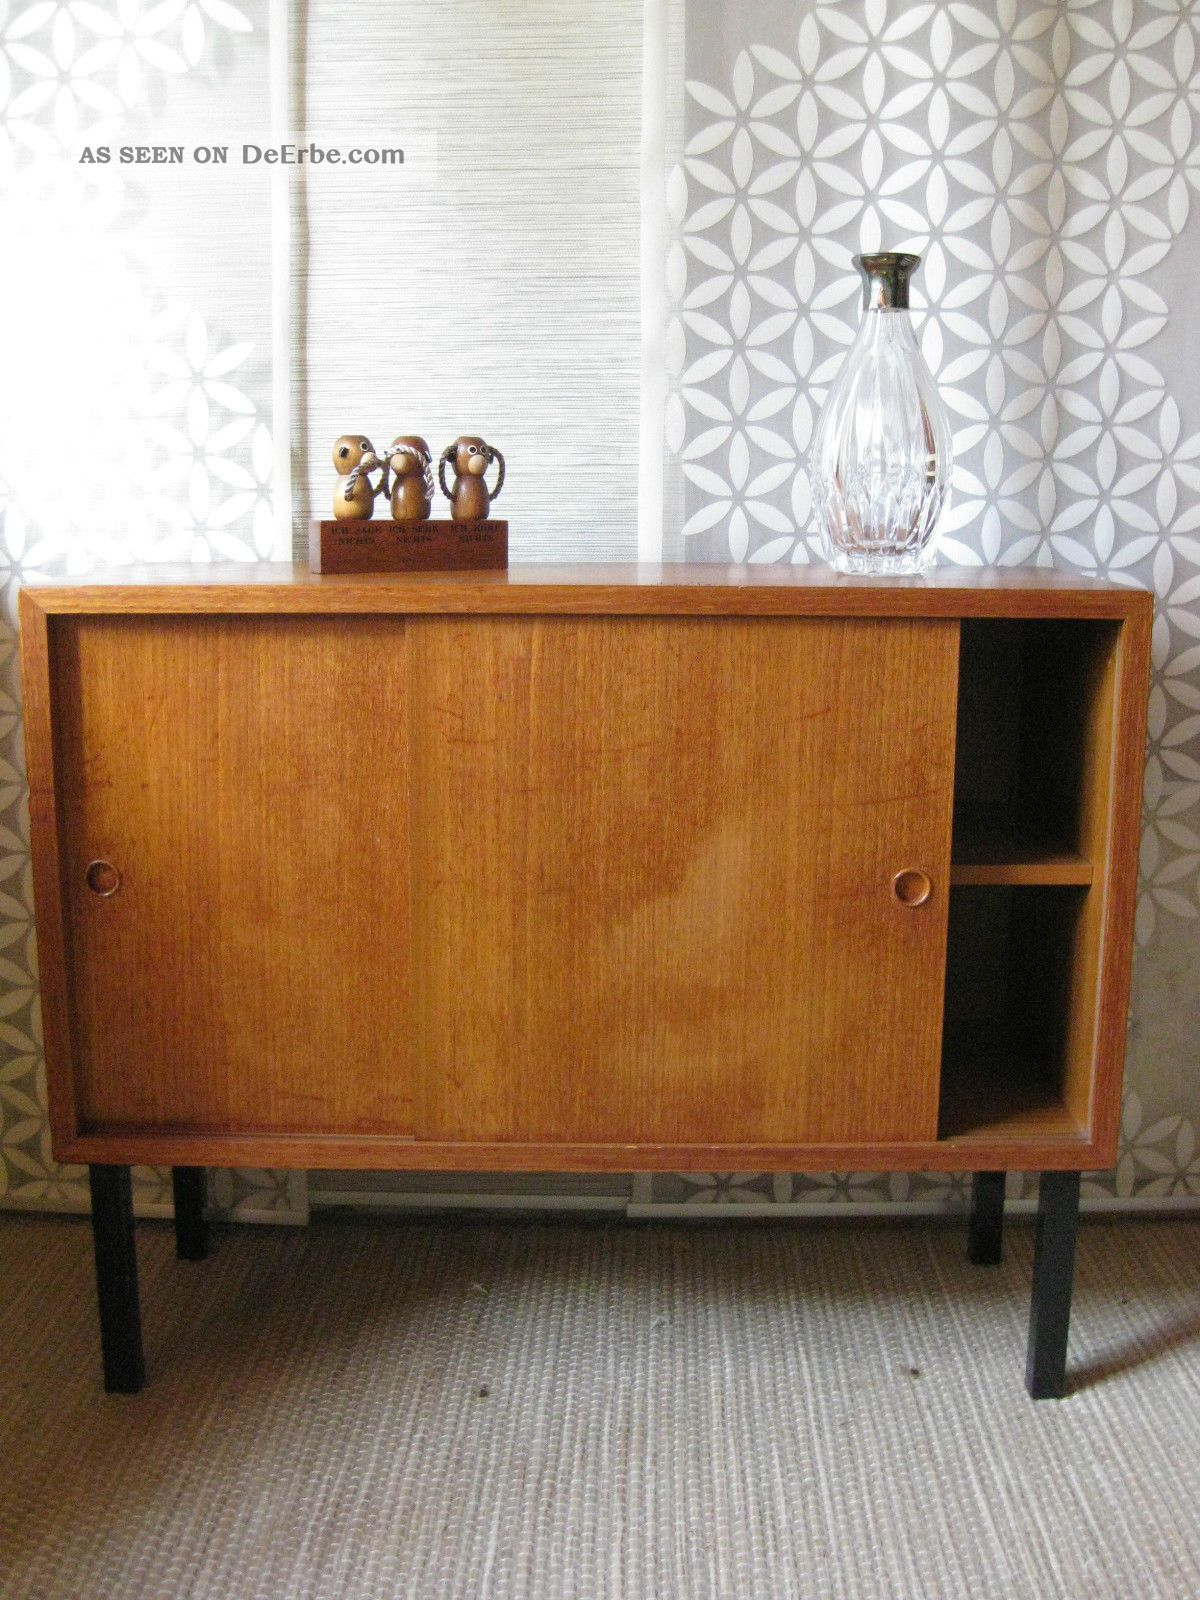 60er jahre kommode sideboard string ra danish modern schiebet ren schrank. Black Bedroom Furniture Sets. Home Design Ideas